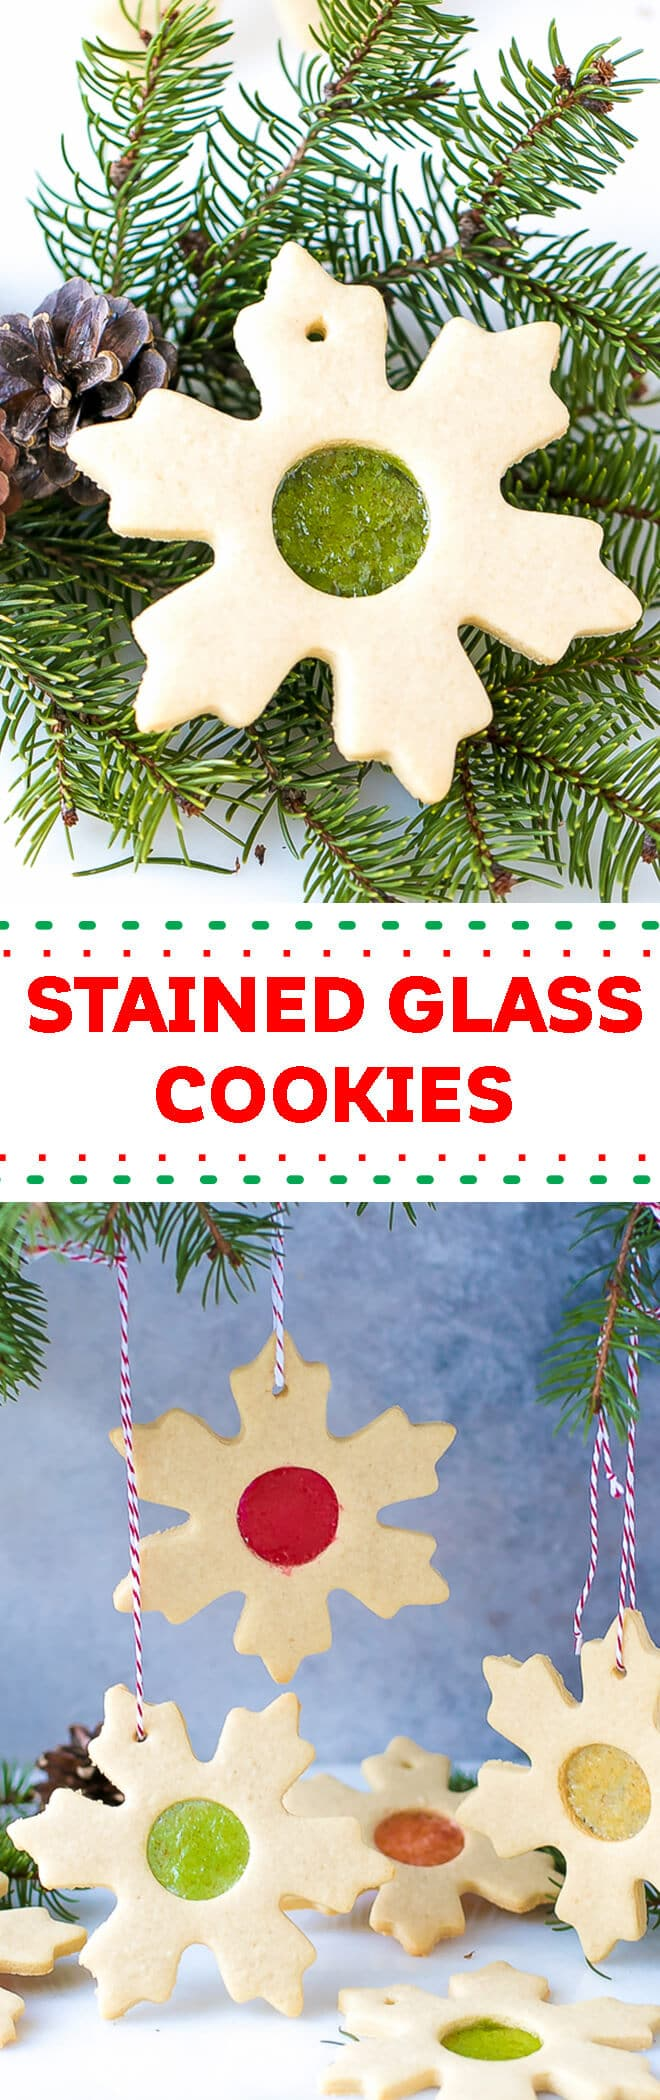 Easy Stained Glass Cookies Recipe - buttery sugar cookies, cut out and baked with crushed candy, to achieve